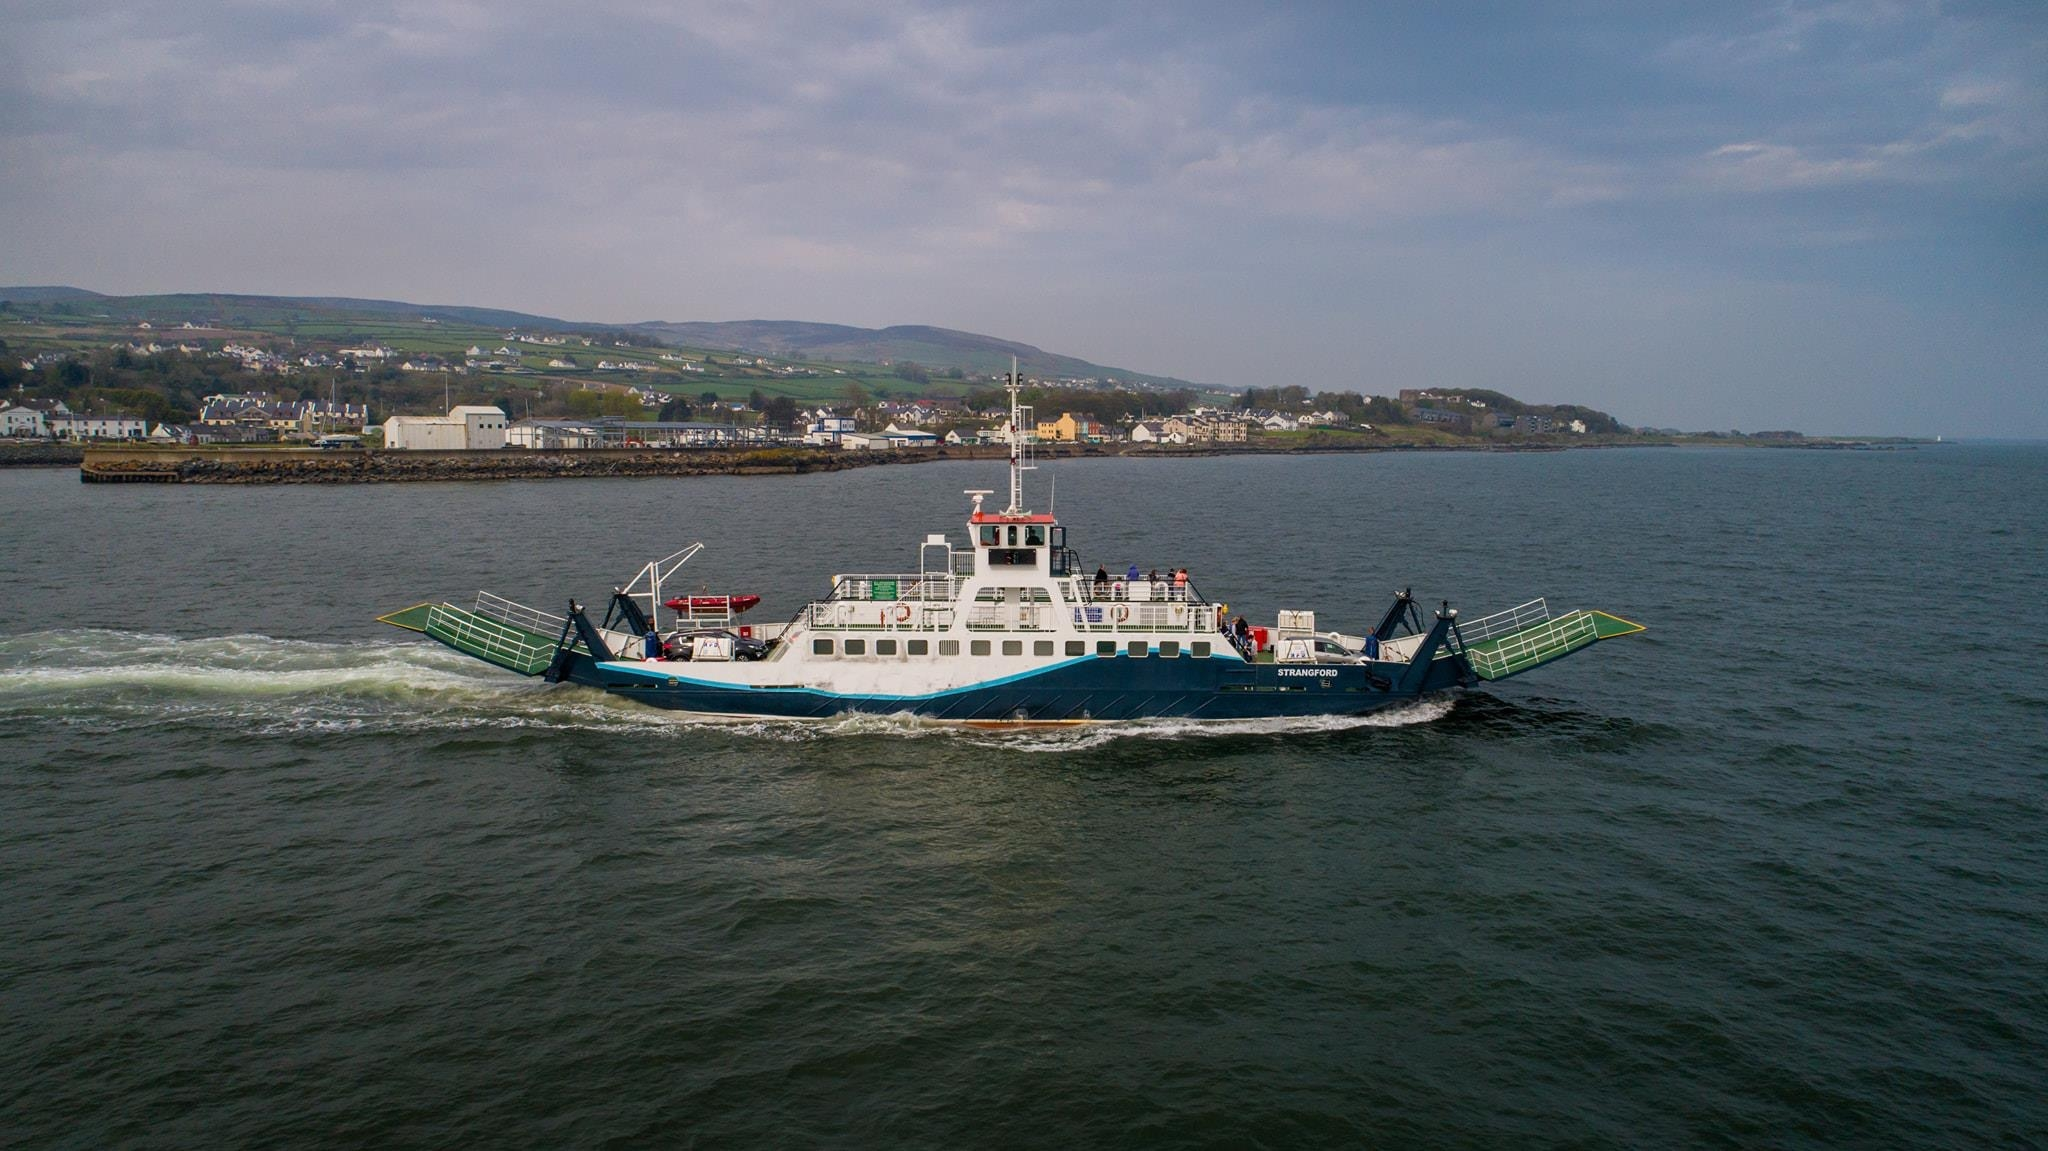 Frazer Ferries STRANGFORD seen leaving Greencastle at the start of another crossing to Magilligan Point while in service for Scenic Lough Foyle Ferry, Spring 2019. Scenic Lough Foyle Ferry.